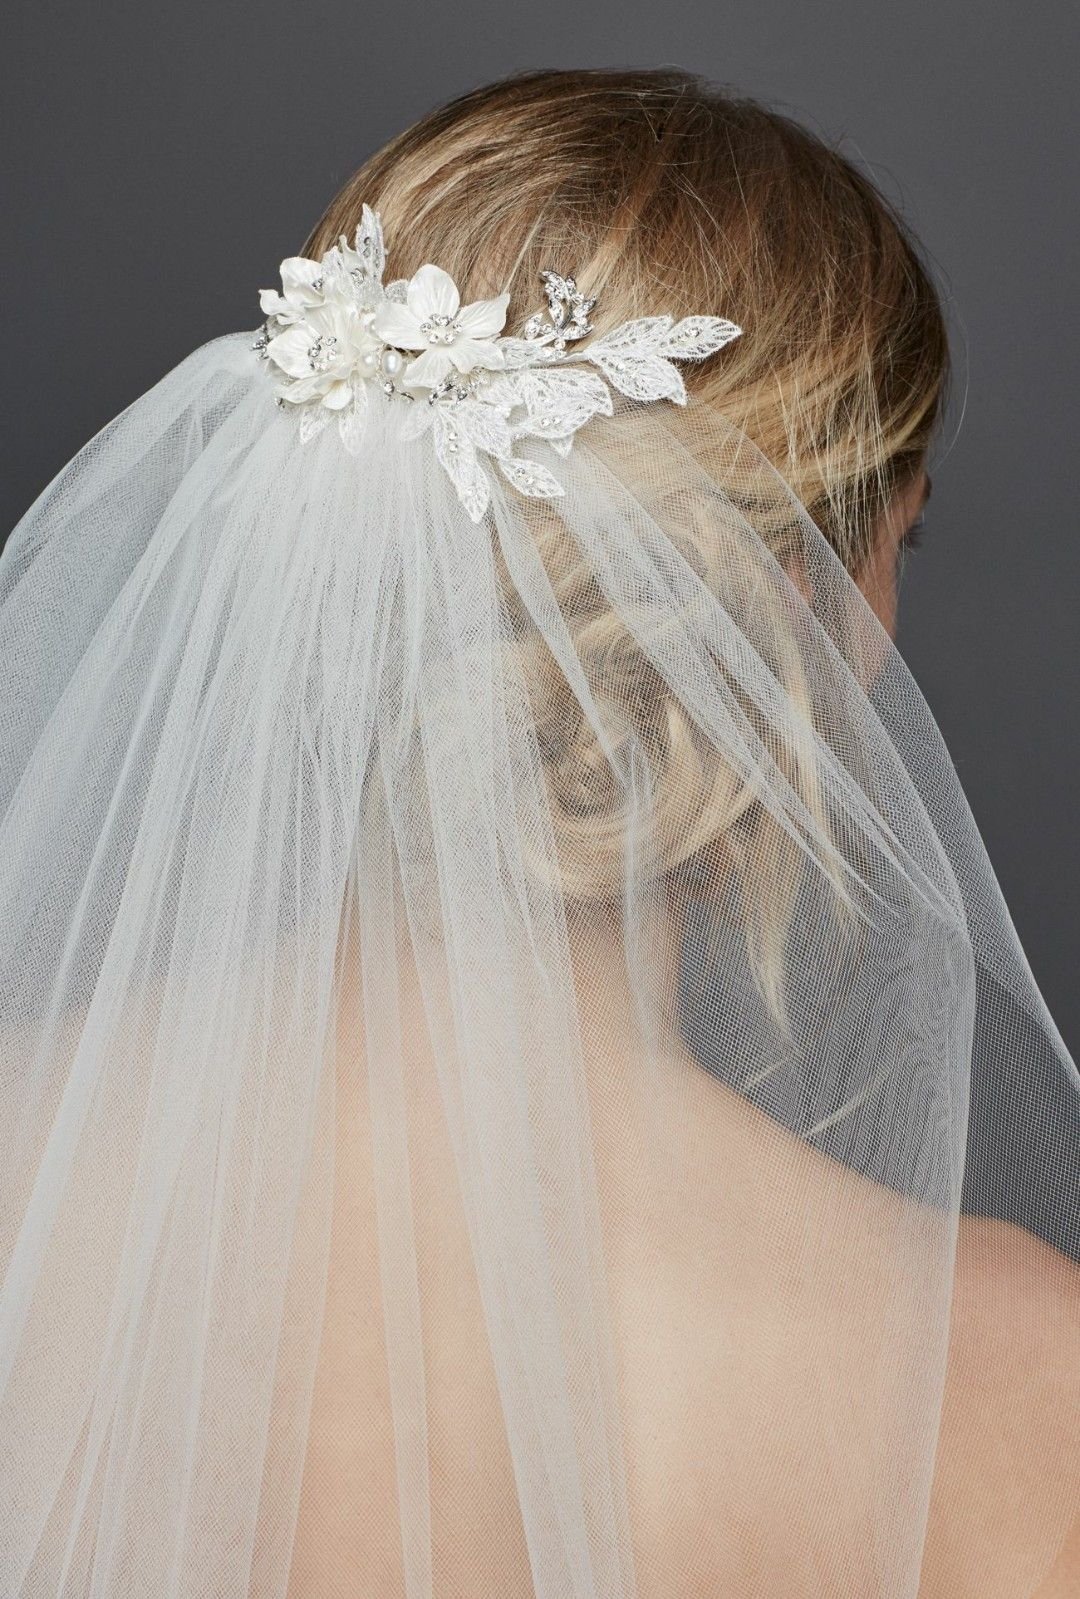 Shoulder Length Full Volume Veil Featuring Floral Embellished Comb ...